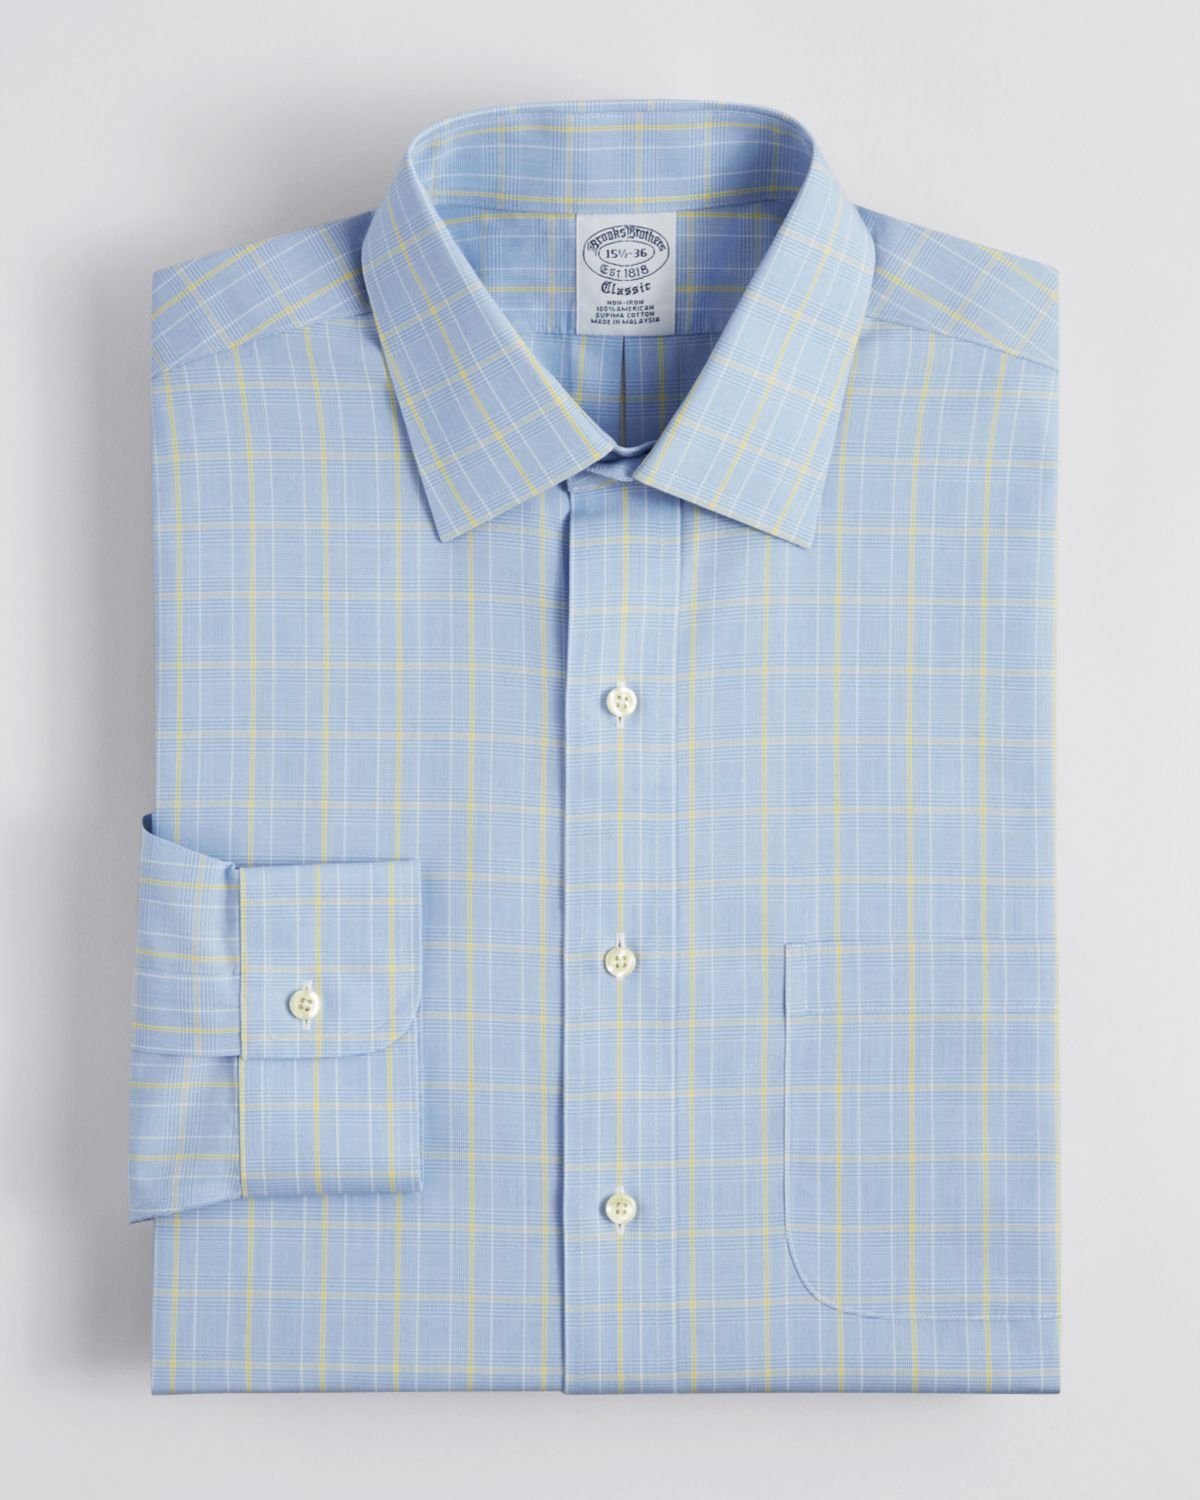 Brooks brothers glen plaid windowpane check dress shirt in for Blue check dress shirt